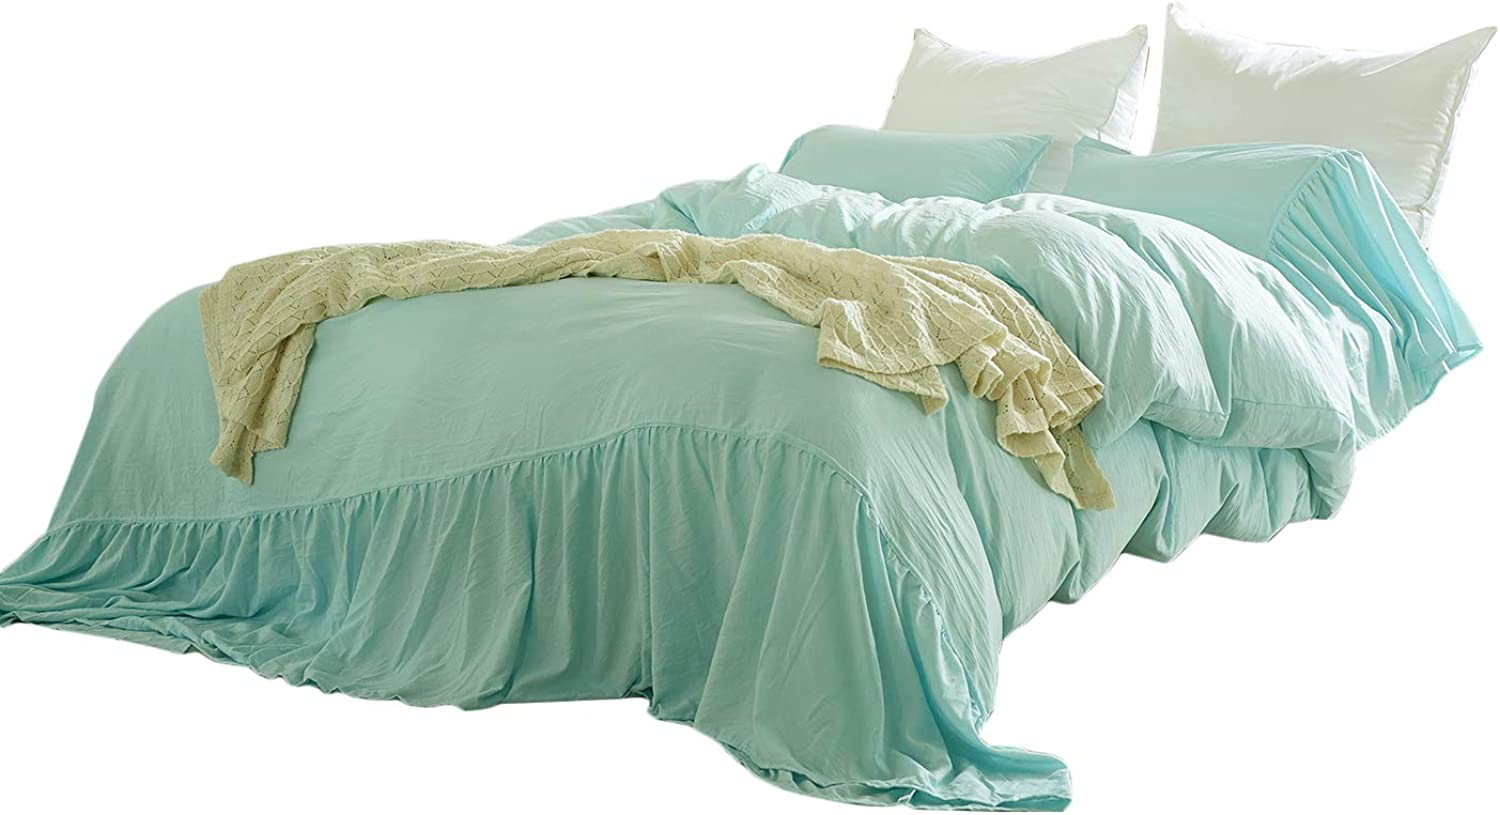 CoutureBridal Farmhouse Duvet Cover Twin Mint Washed Cotton Mermaid Tail Rustic Solid color Bedding Set Vintage Romantic Comforter Cover with Ties,1 Duvet Cover+1 Pillowcase